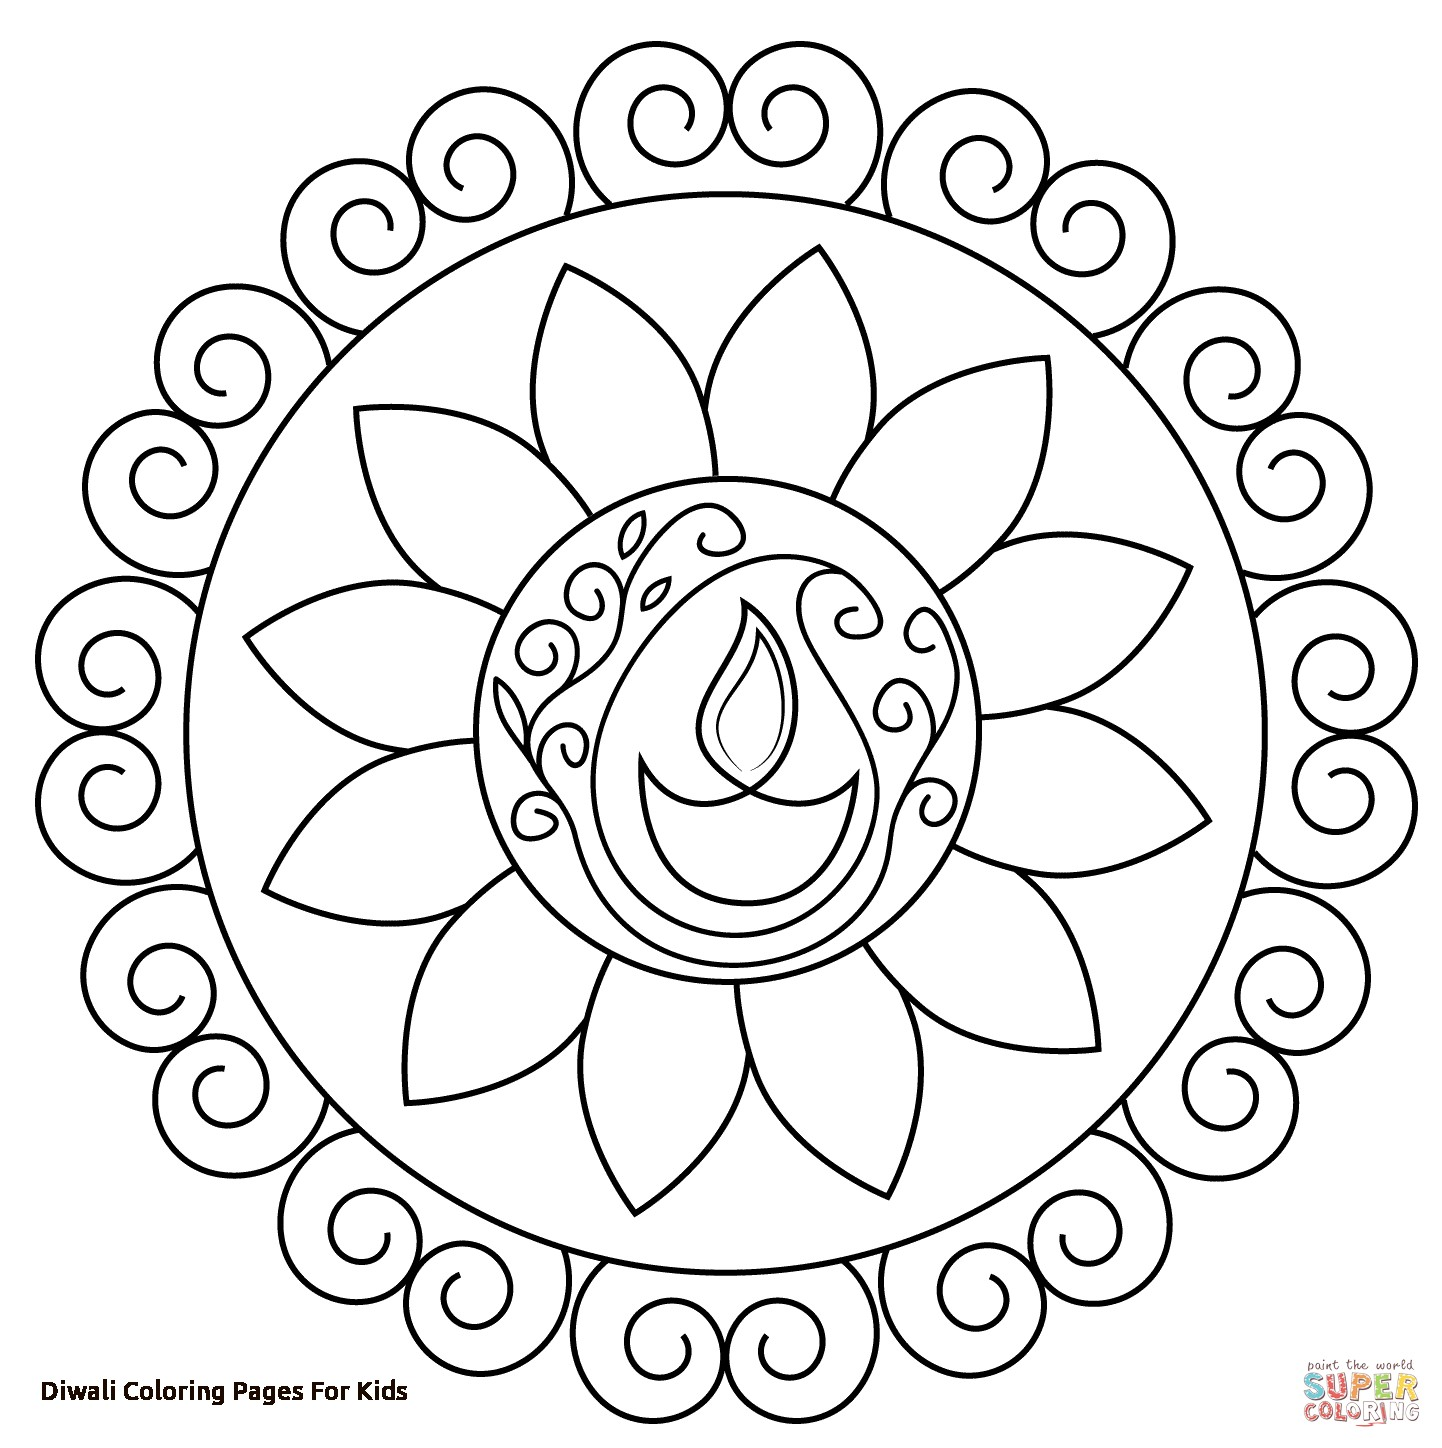 1442x1448 Independence Day Coloring Page For Kids Pages Printables At Diwali